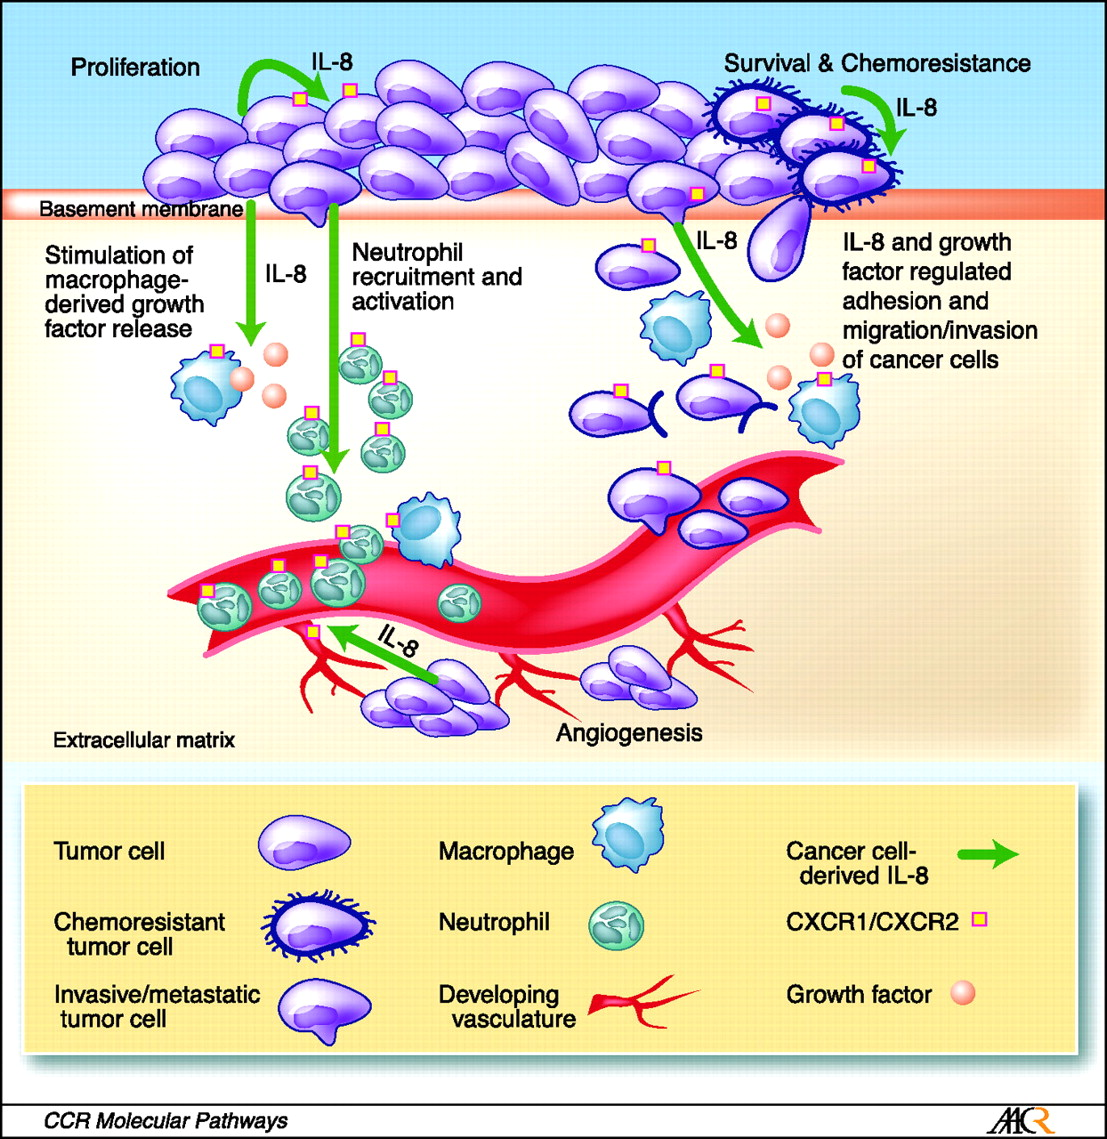 The role of IL-8 signaling in the tumor microenvironment. Tumor-derived IL-8 has the capacity to exert profound effects on the tumor microenvironment. For example, secretion of IL-8 from cancer cells can enhance the proliferation and survival of cancer cells through autocrine signaling pathways. In addition, tumor-derived IL-8 will activate endothelial cells in the tumor vasculature to promote angiogenesis and induce a chemotactic infiltration of neutrophils into the tumor site. Although IL-8 can promote cell invasion and migration, the capacity of IL-8 to induce tumor-associated macrophages to secrete additional growth factors will further increase the rate of cell proliferation and cancer cell invasion at the tumor site. The multiple effects of IL-8 signaling upon different cell types present within the tumor microenvironment suggests that targeting of CXC-chemokine signaling (including but not limited to IL-8) may have important implications to halt disease progression and assist in sensitizing tumors to chemotherapeutic and biological agents. http://clincancerres.aacrjournals.org/content/14/21/6735